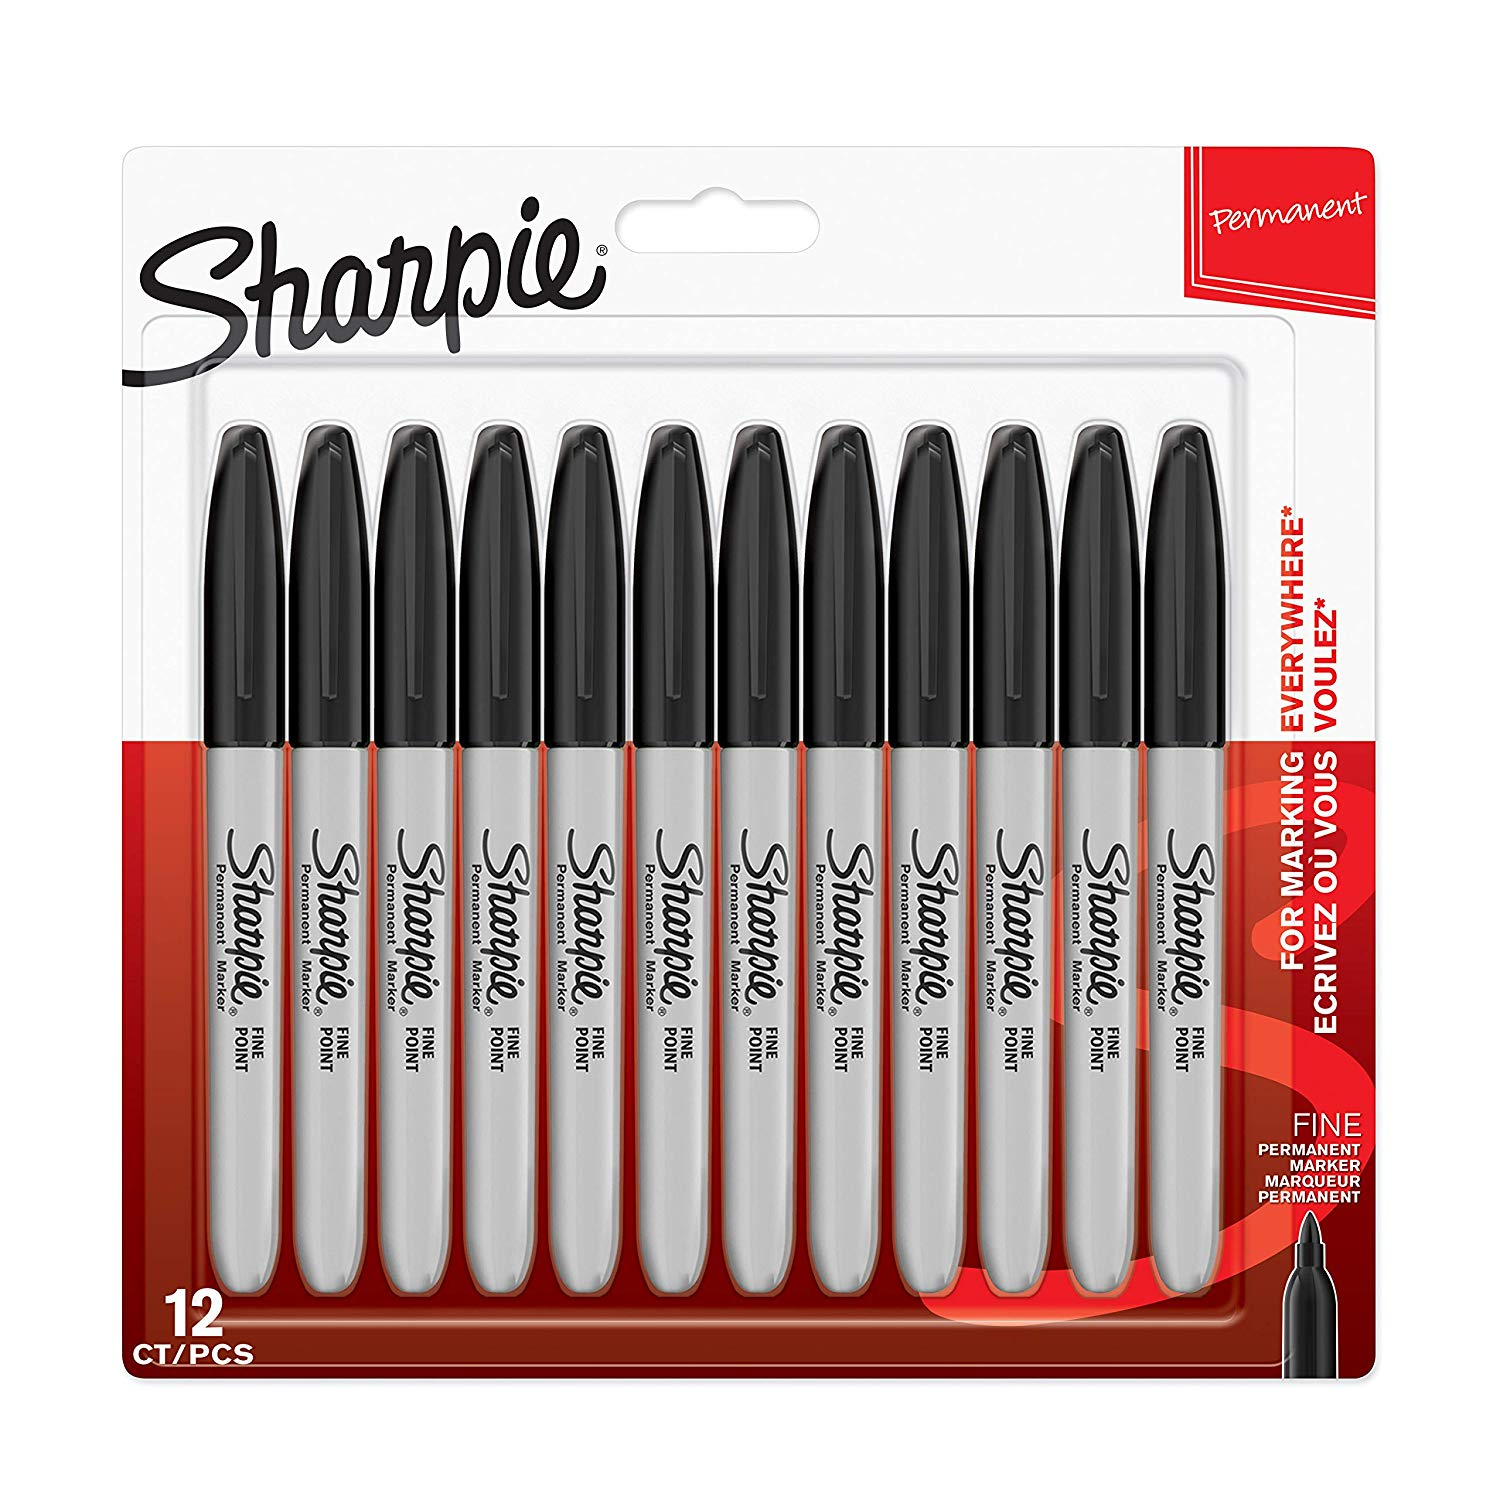 Sharpie Permanent Markers, Fine Tip, Black, 12 Pack